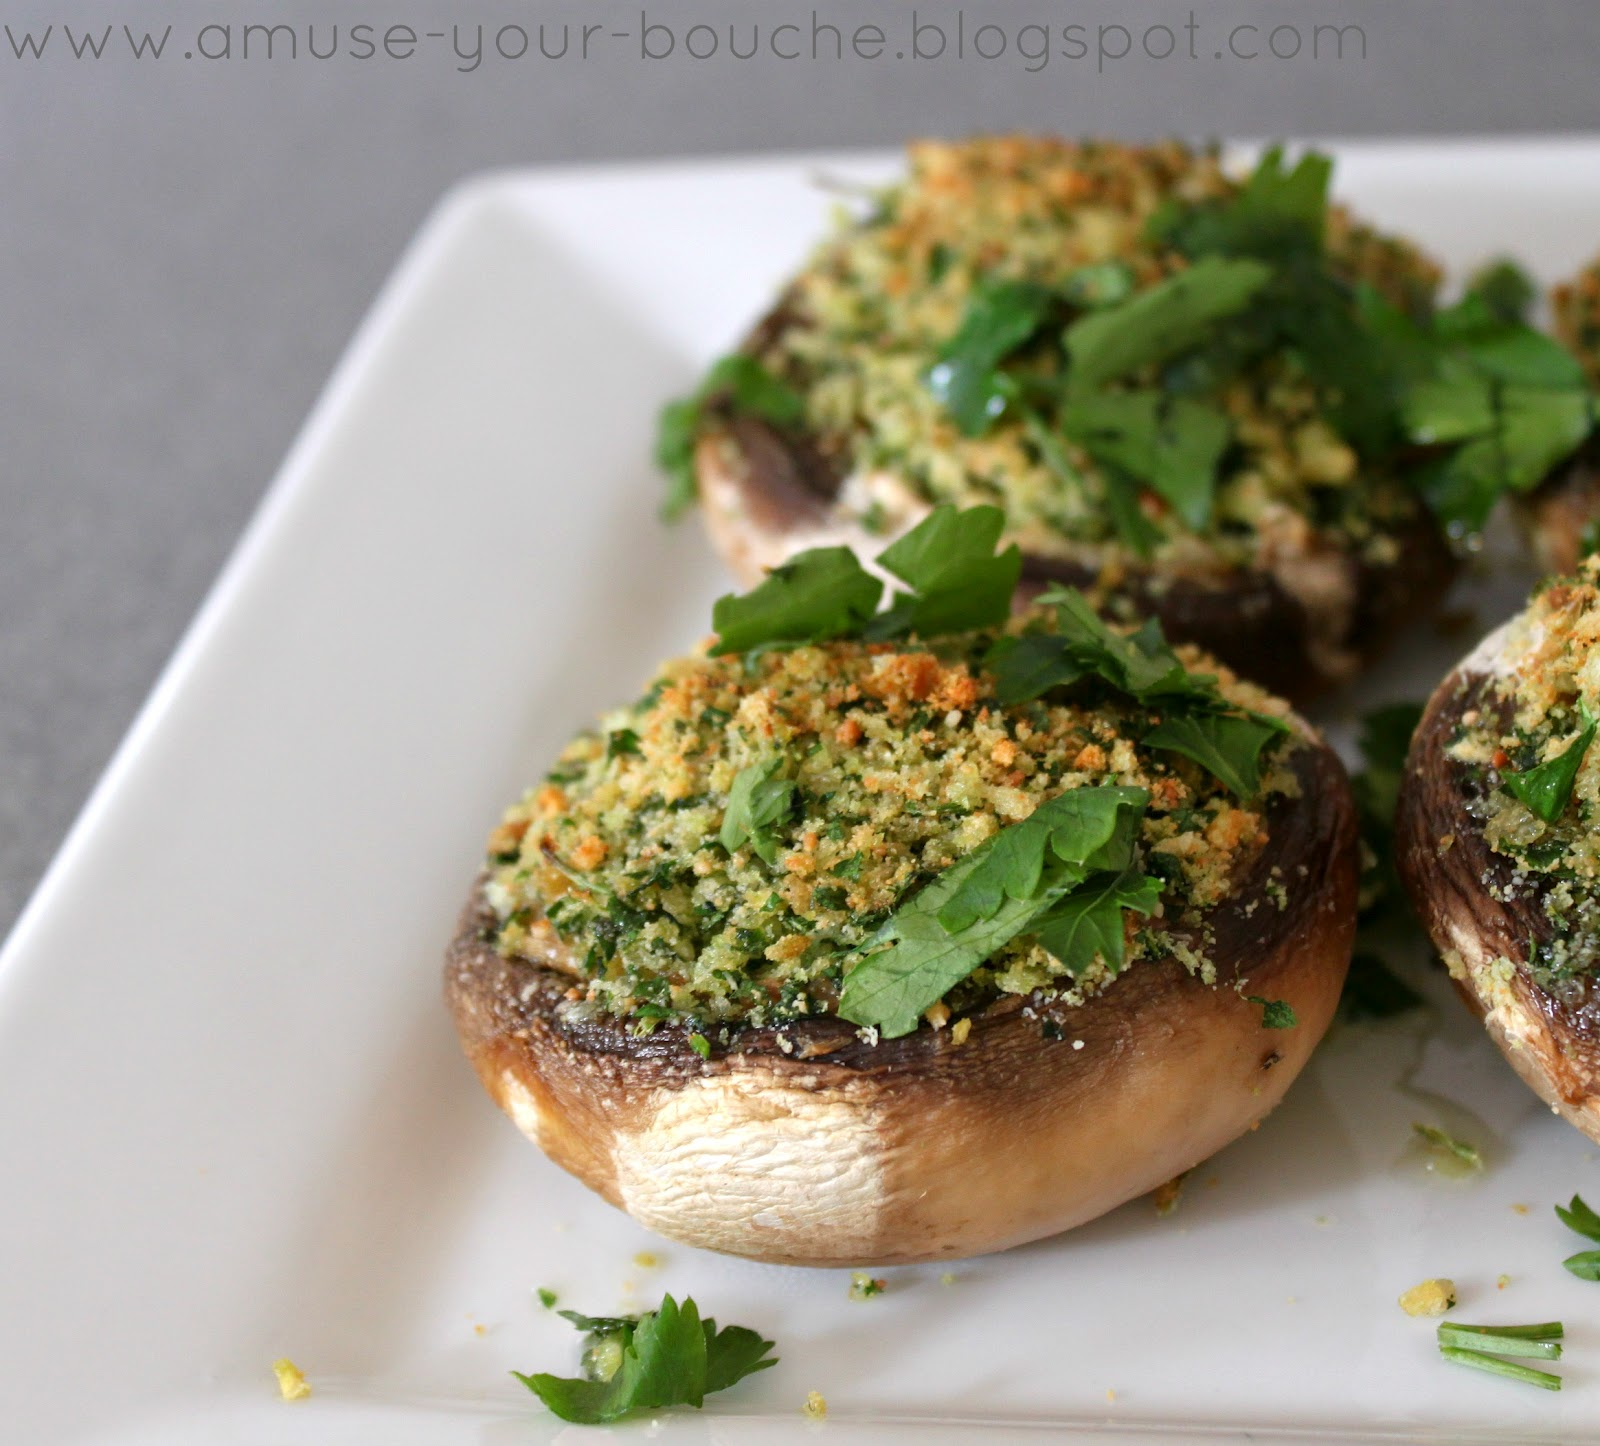 Simple stuffed mushrooms - Amuse Your Bouche